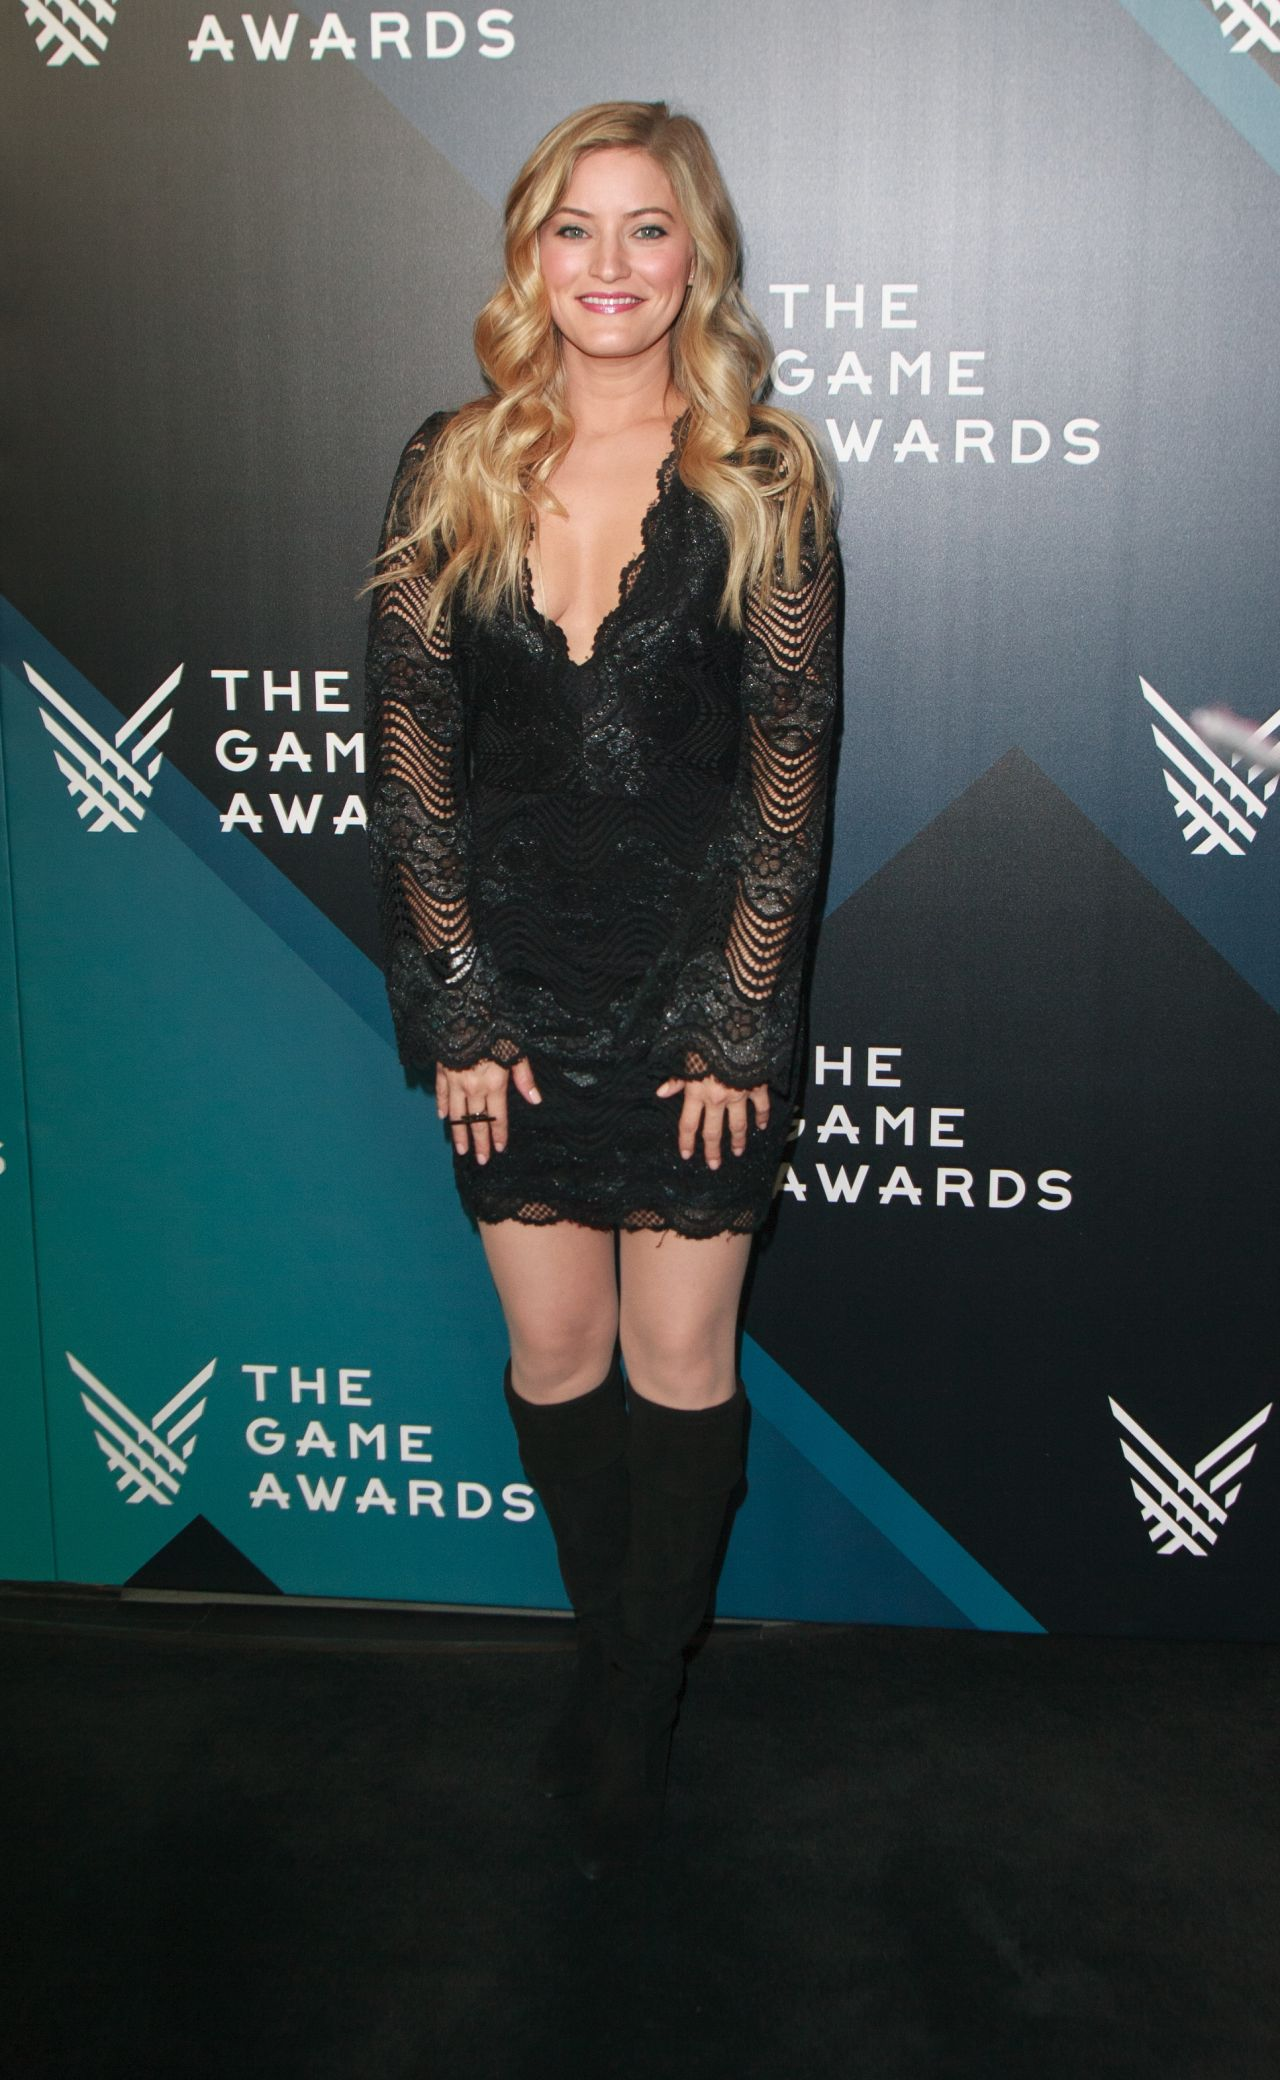 Justine Ezarik - The Game Awards 2017 in Los Angeles